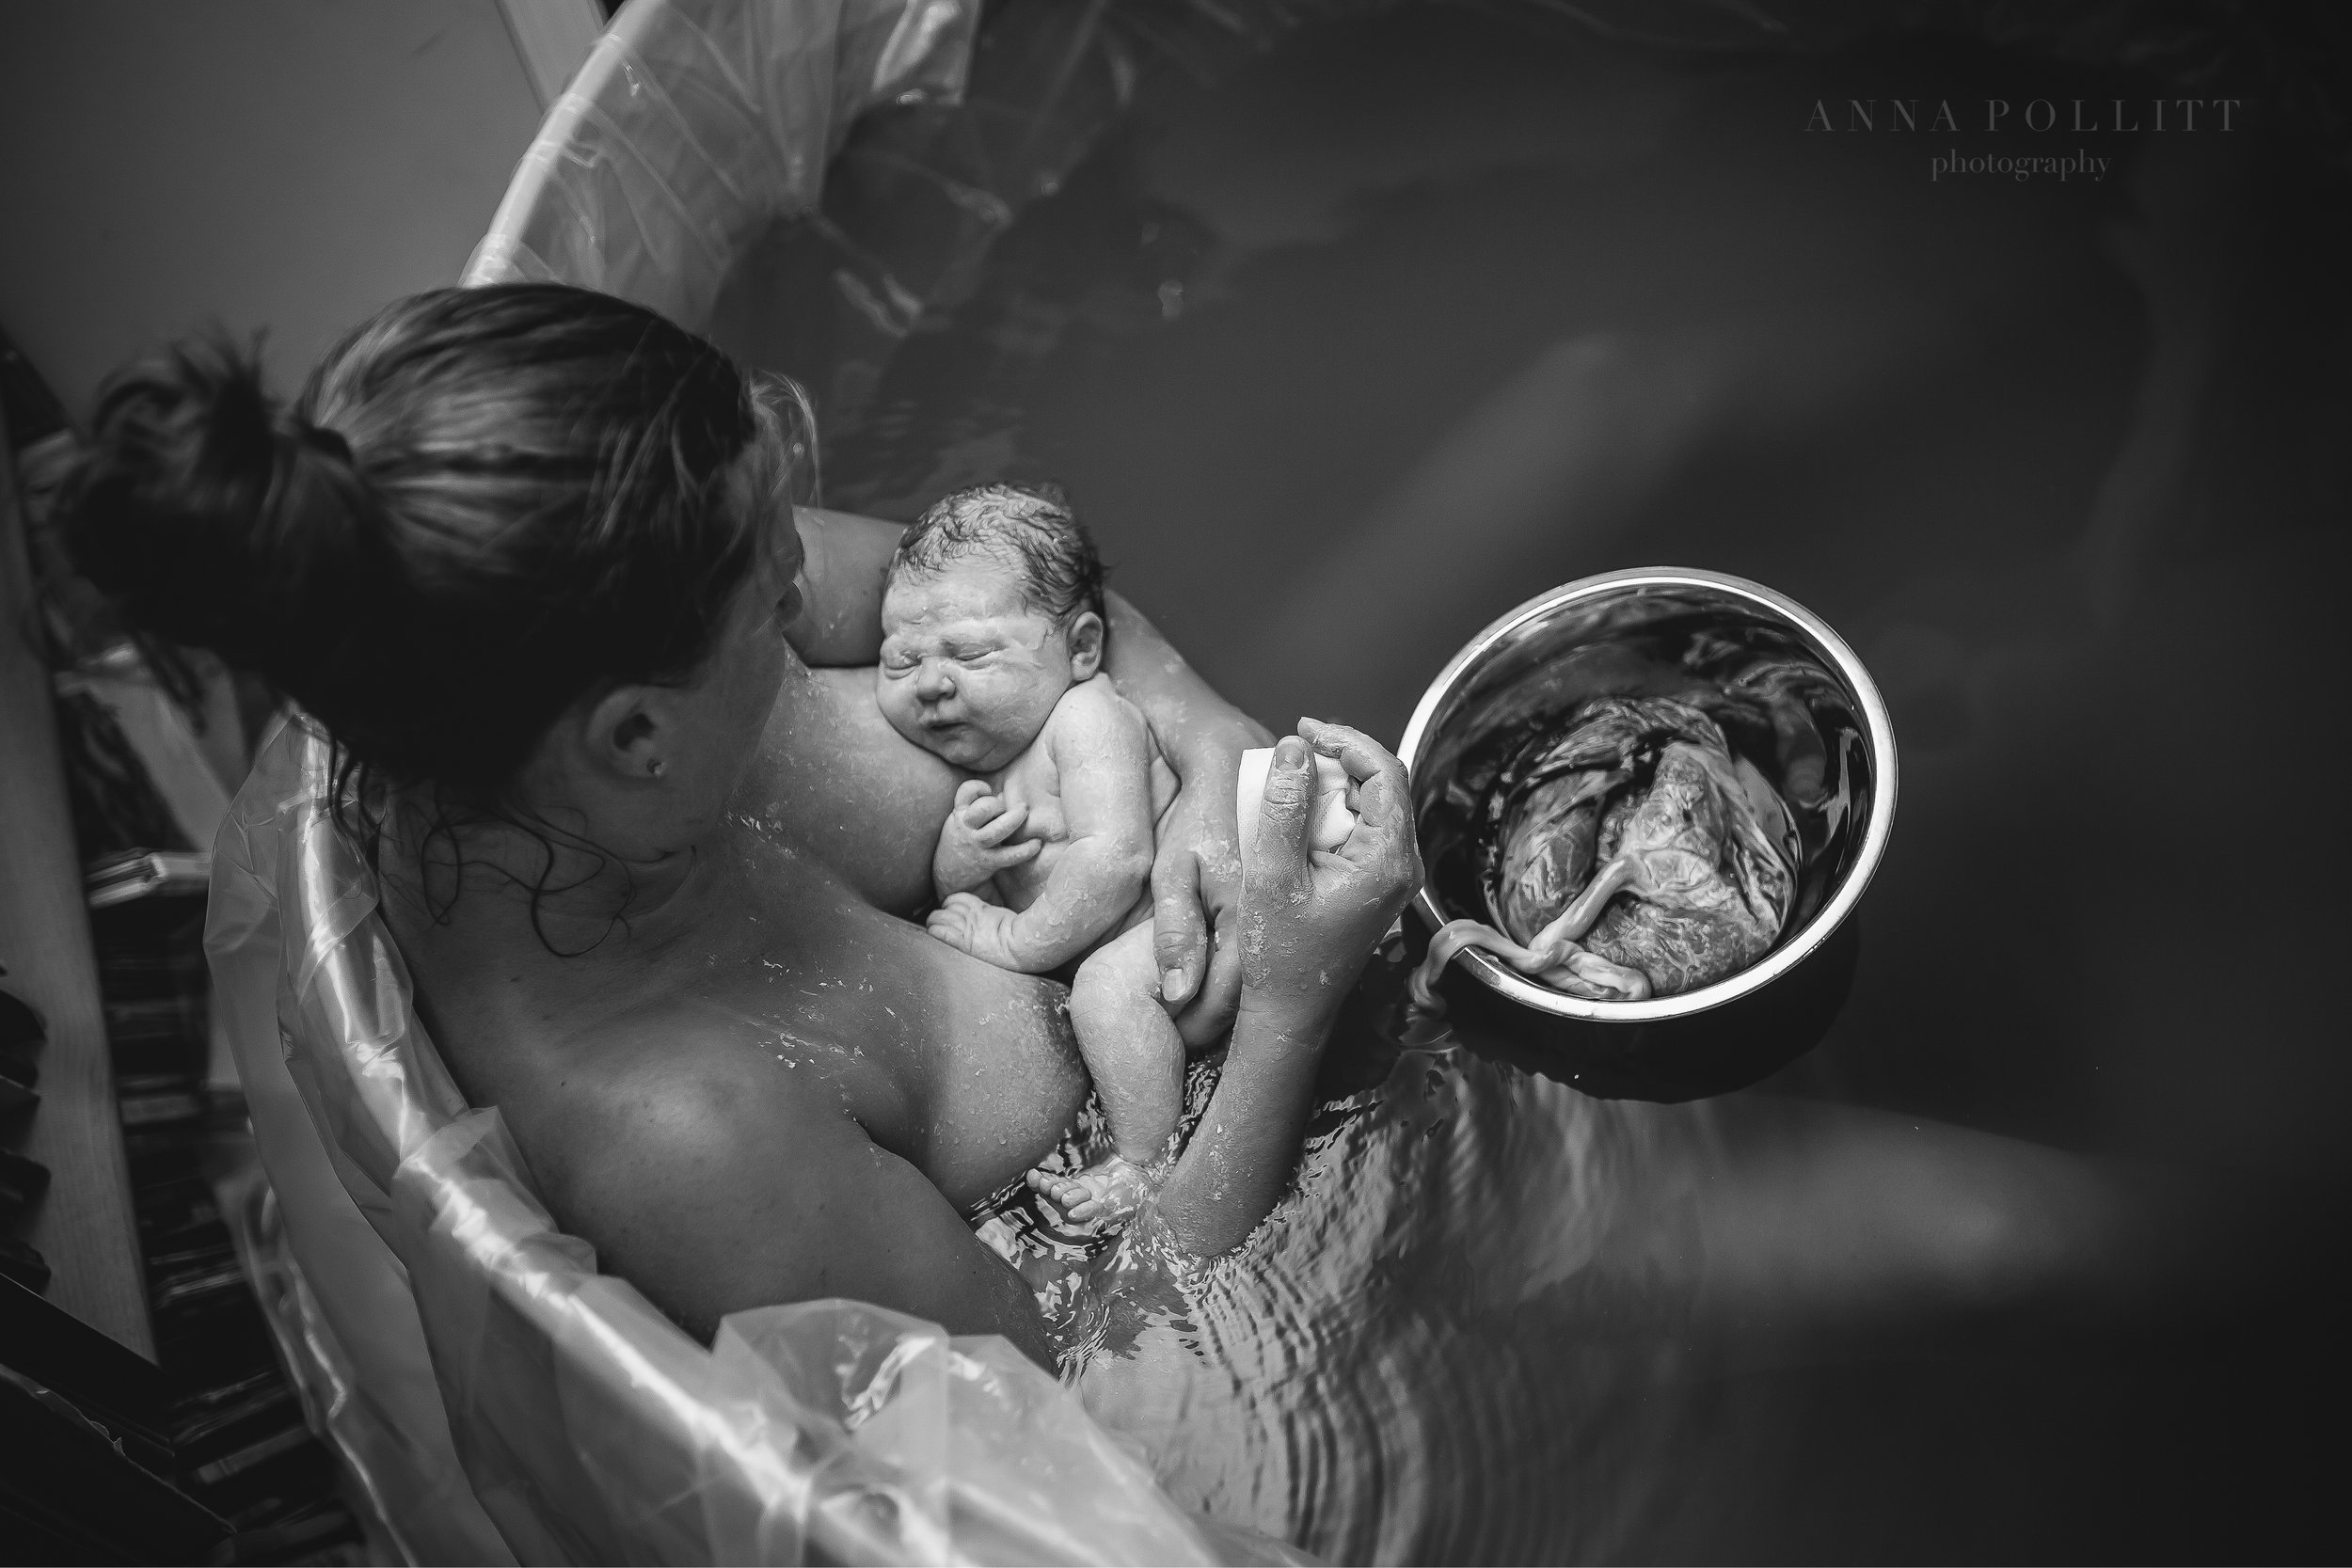 """""""This moment, between a mother and her new baby, truly reflects the calm, intimate connection they are experiencing... and when I look at this picture, I can almost feel it. I can feel the serenity. It's very soothing to see the peaceful, perfect love that they share.""""   Anna Pollitt Photography"""